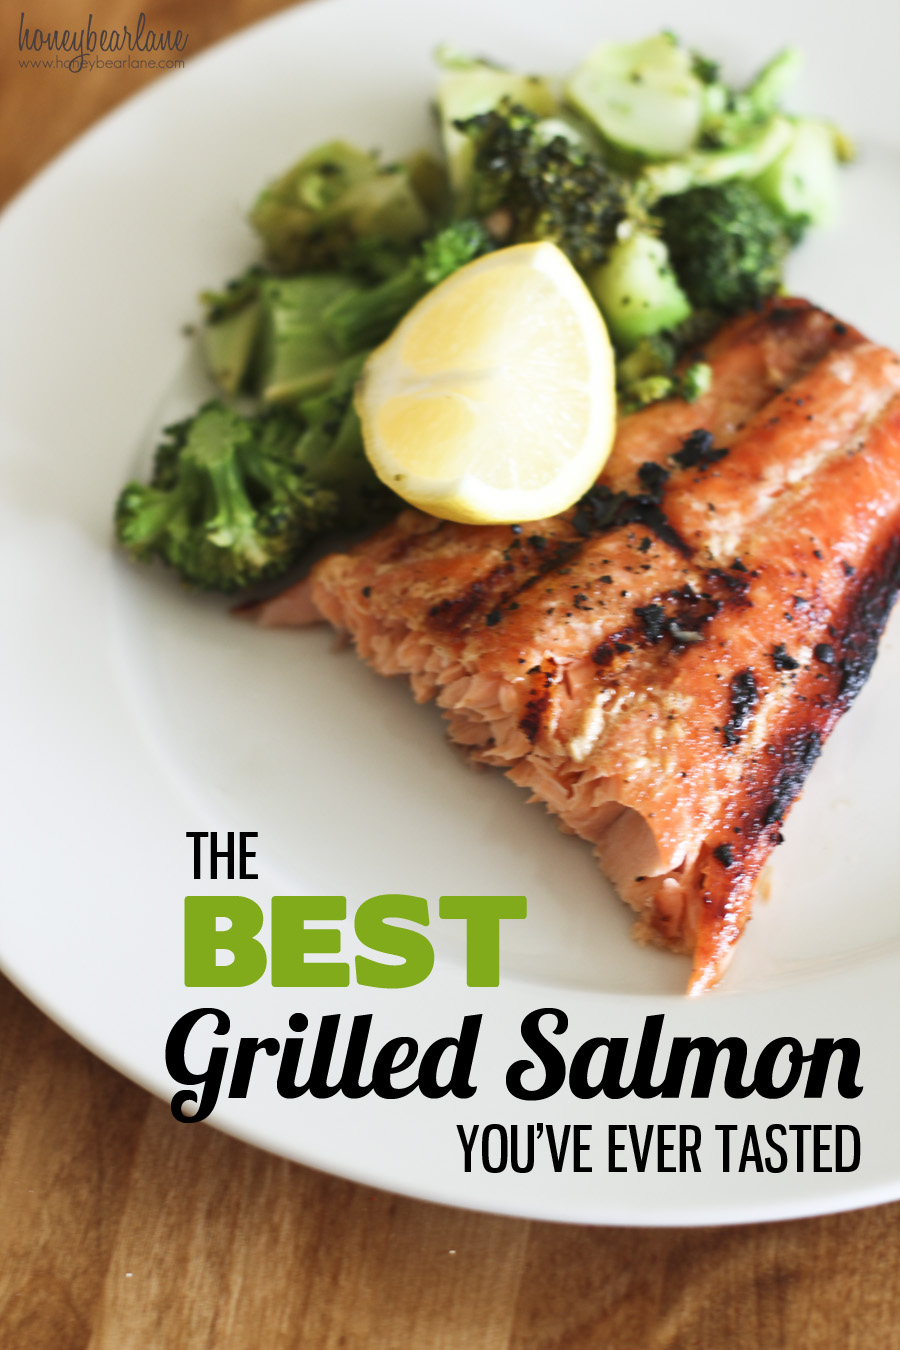 The Best Grilled Salmon Recipe Ever Honeybear Lane